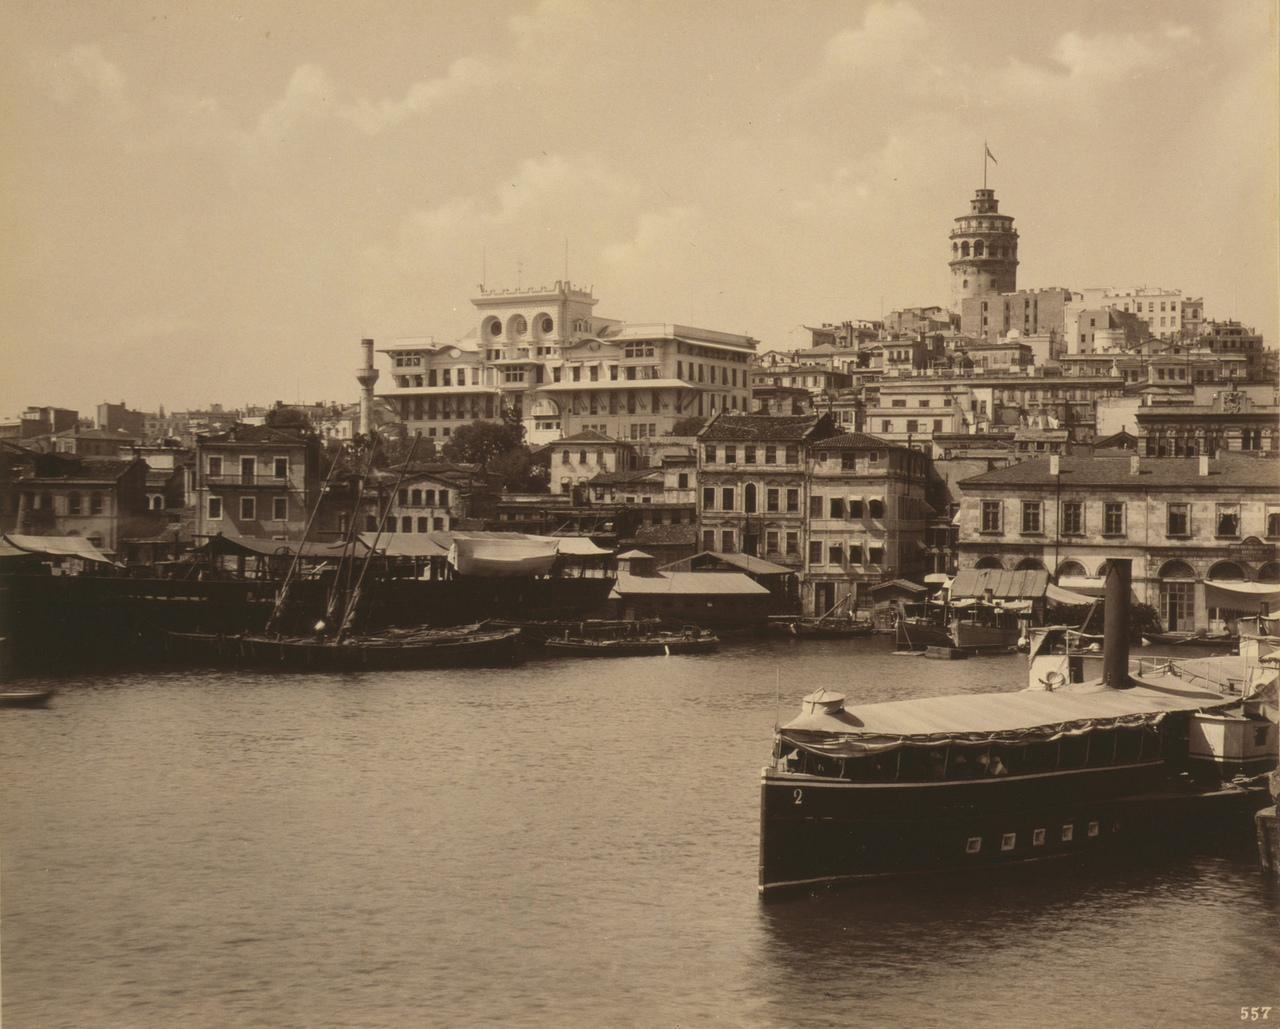 View of Galata and the (Imperial) Ottoman Bank, #istanbul #Turkey  (c. 1880-1893. Abdullah Brothers) http://t.co/Wxnz5s5CCB